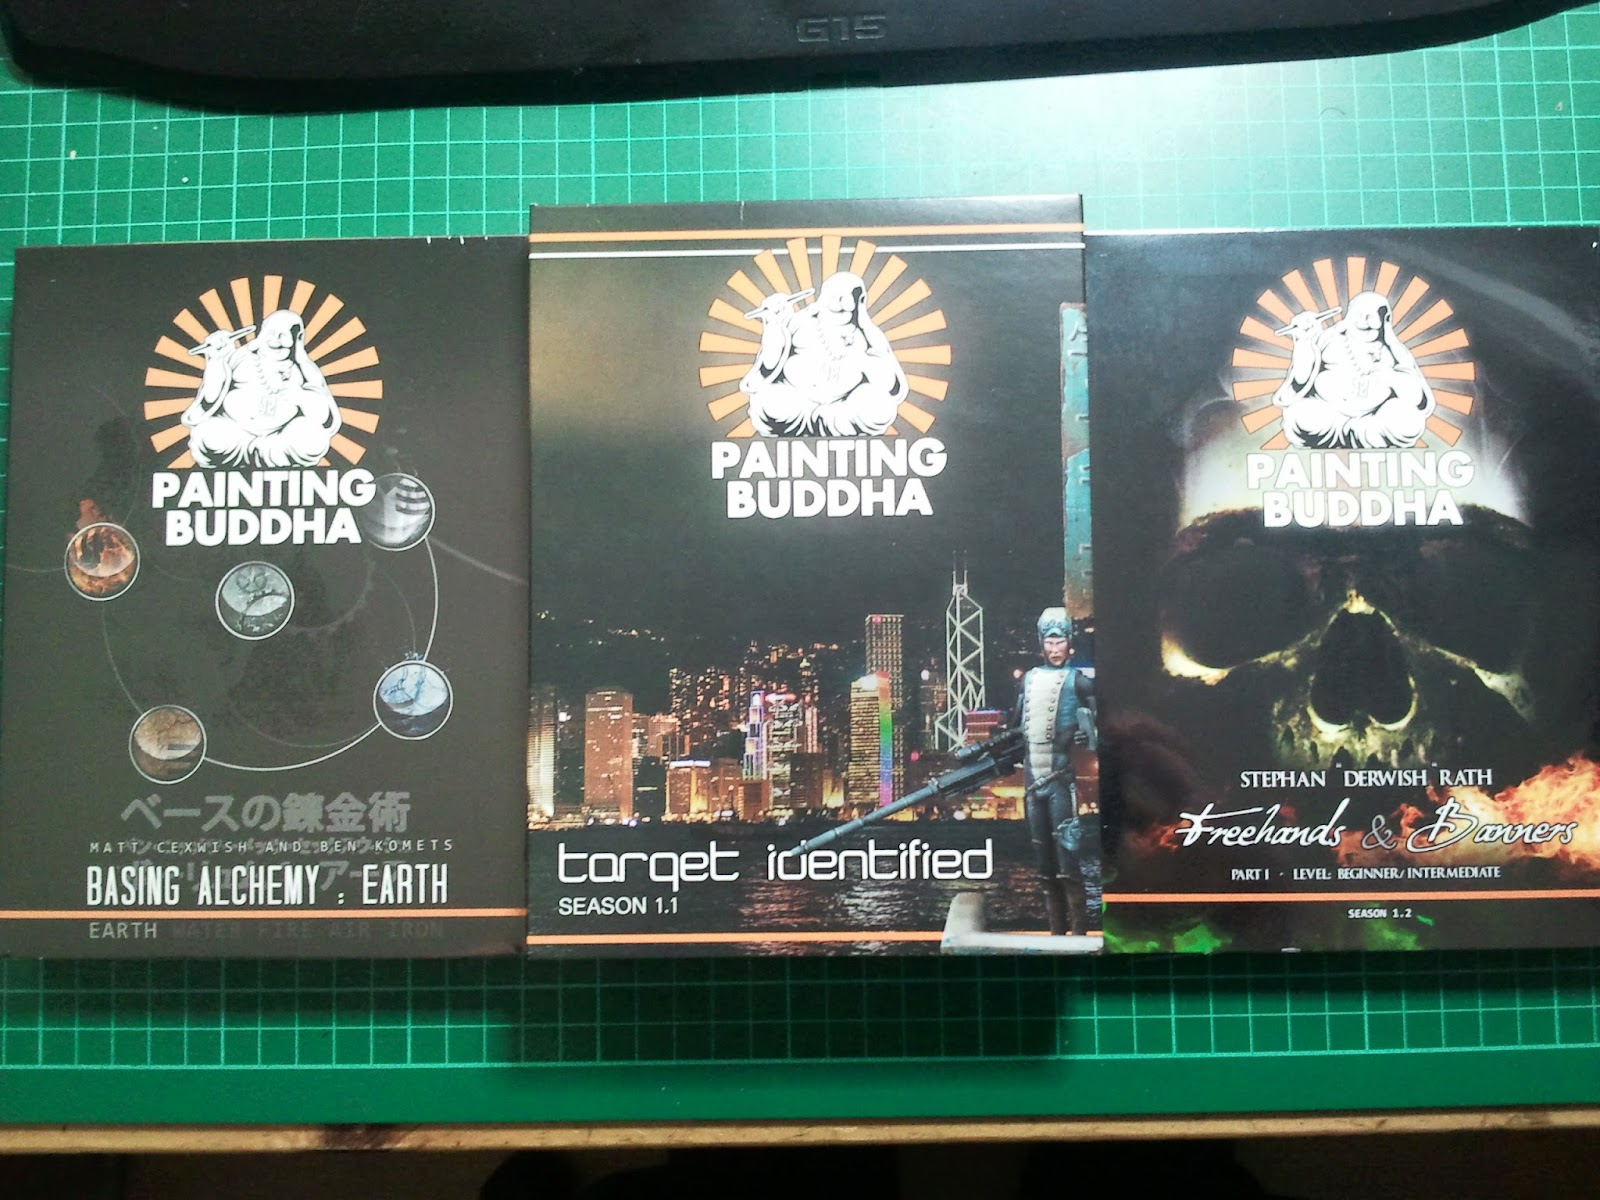 All Painting Buddha Season 1 DVDs